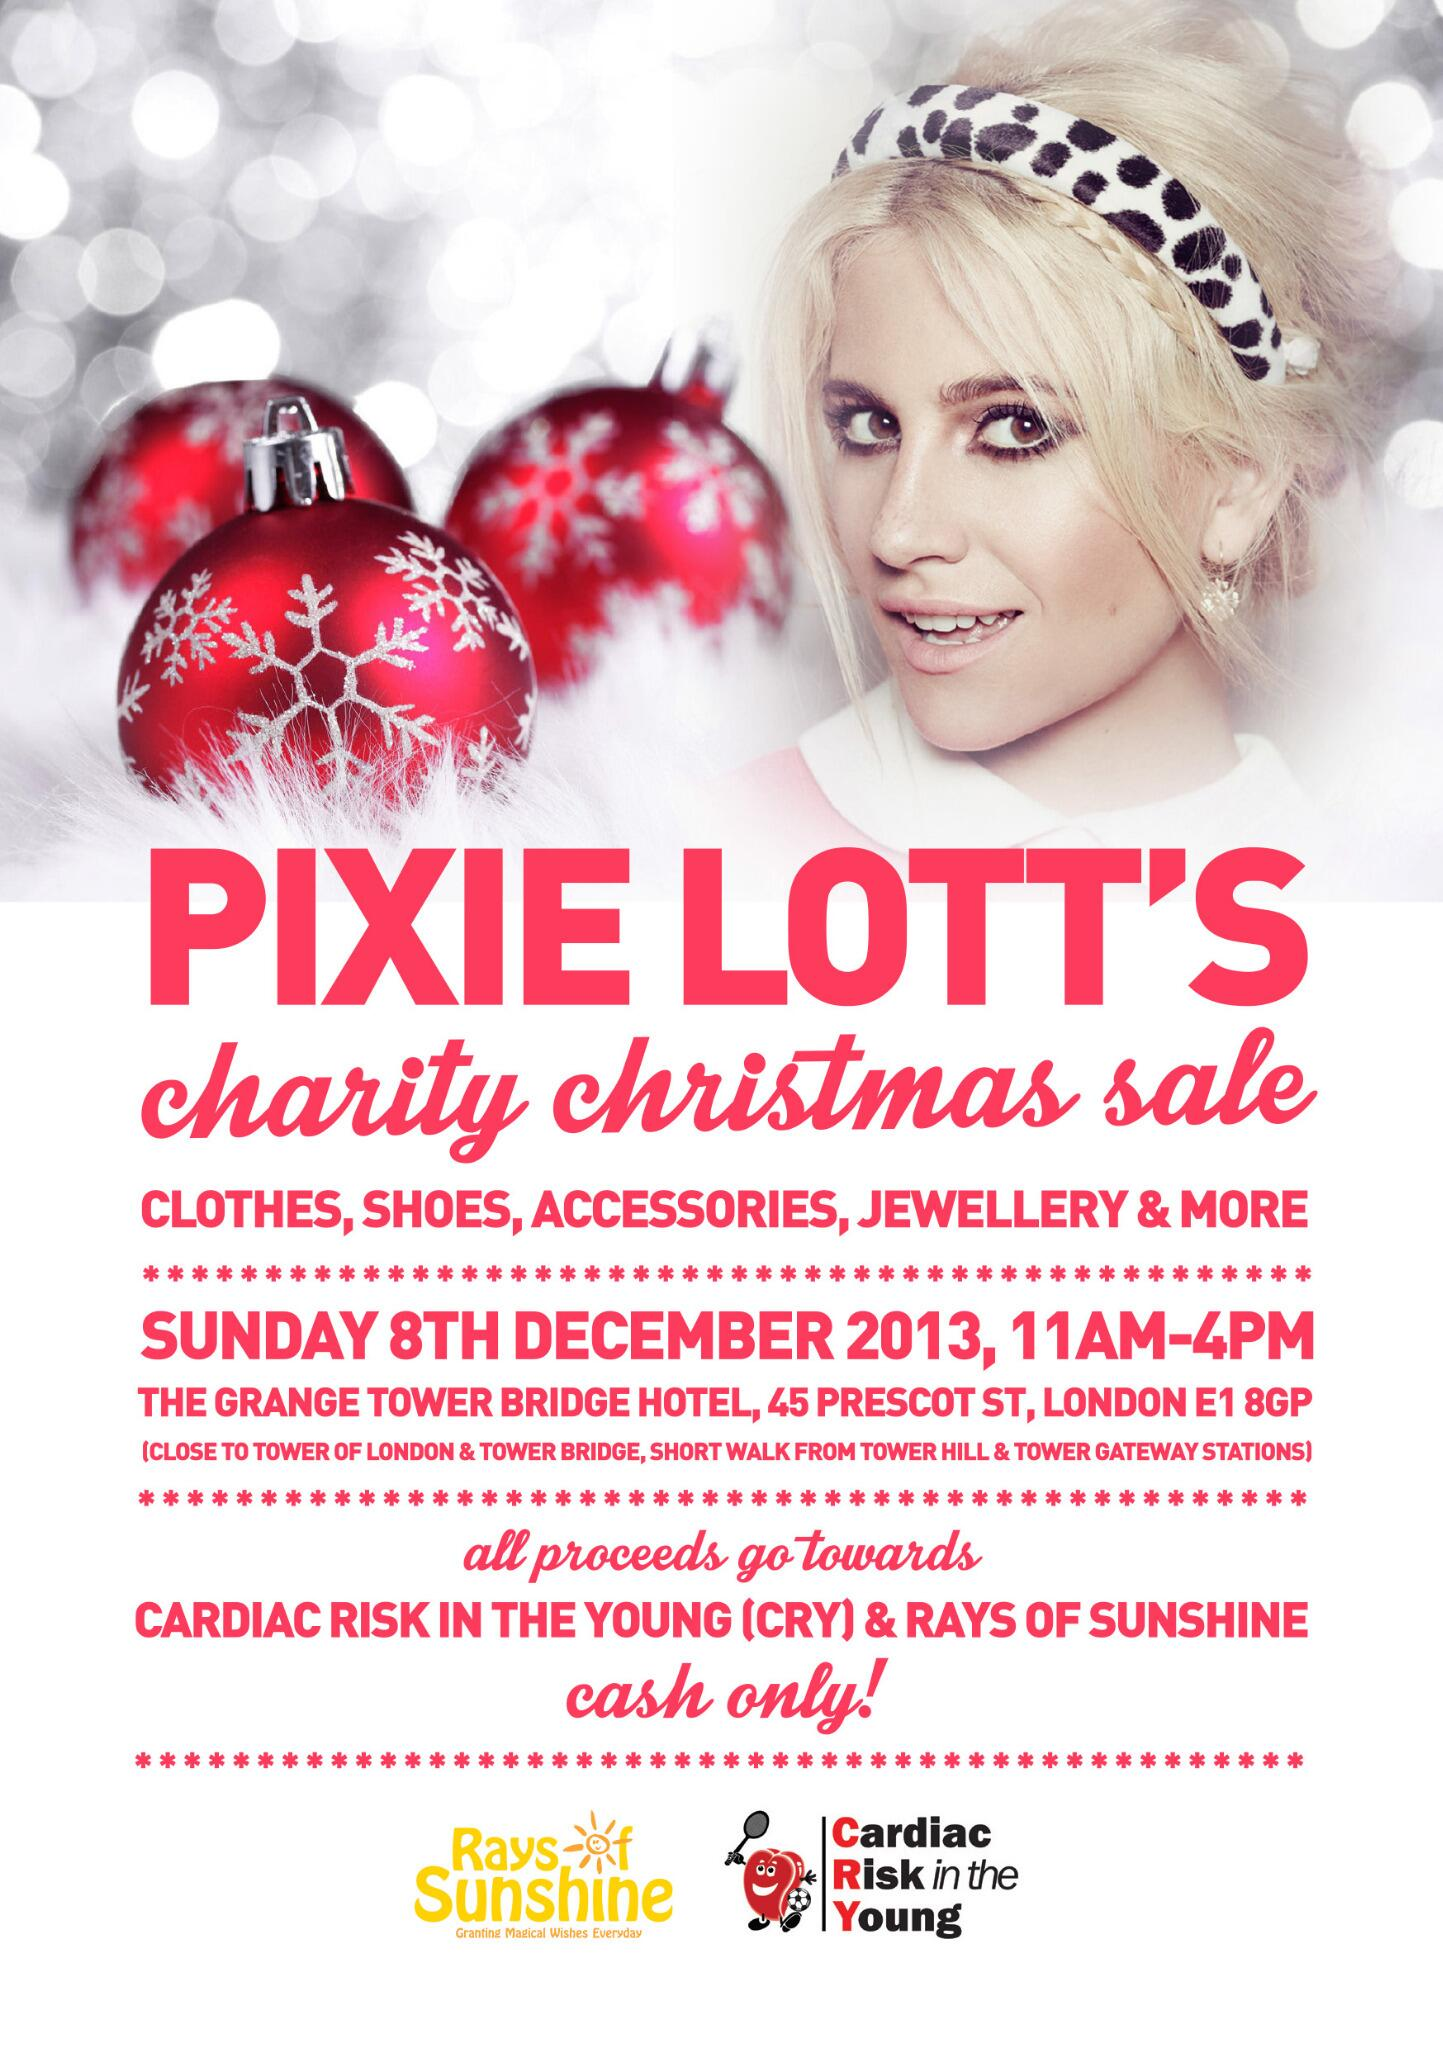 Not long now 2 days to go! Who's joining me for my charity sale for @RaysofSunshine & @CRY_UK? See you there! XX http://t.co/EY6XYEVNr0